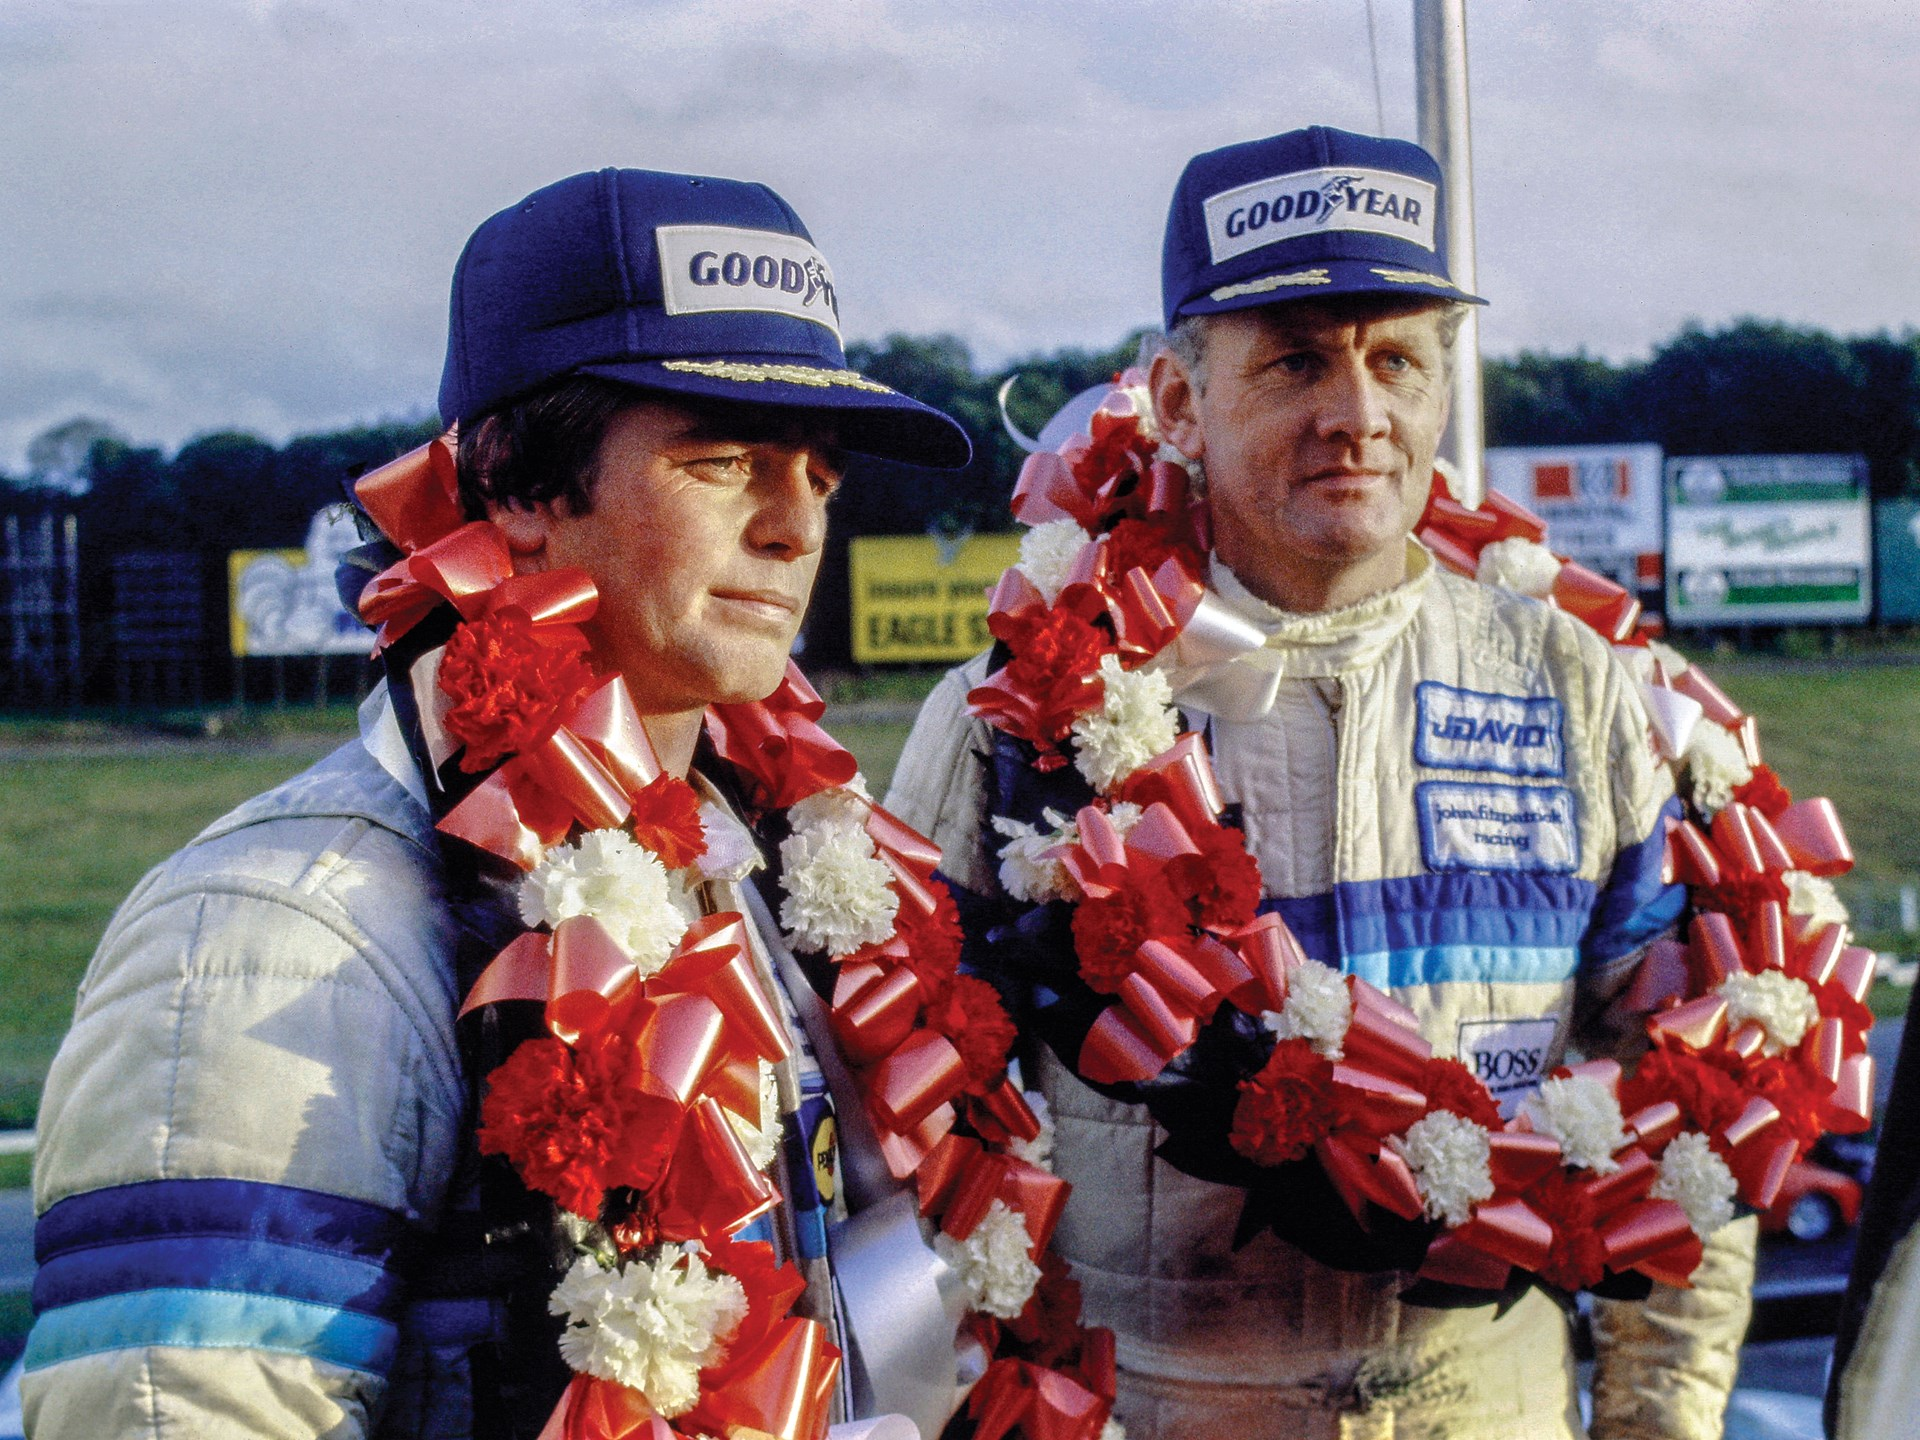 Warwick and Fitzpatrick celebrate their win at Brands Hatch in 1983.